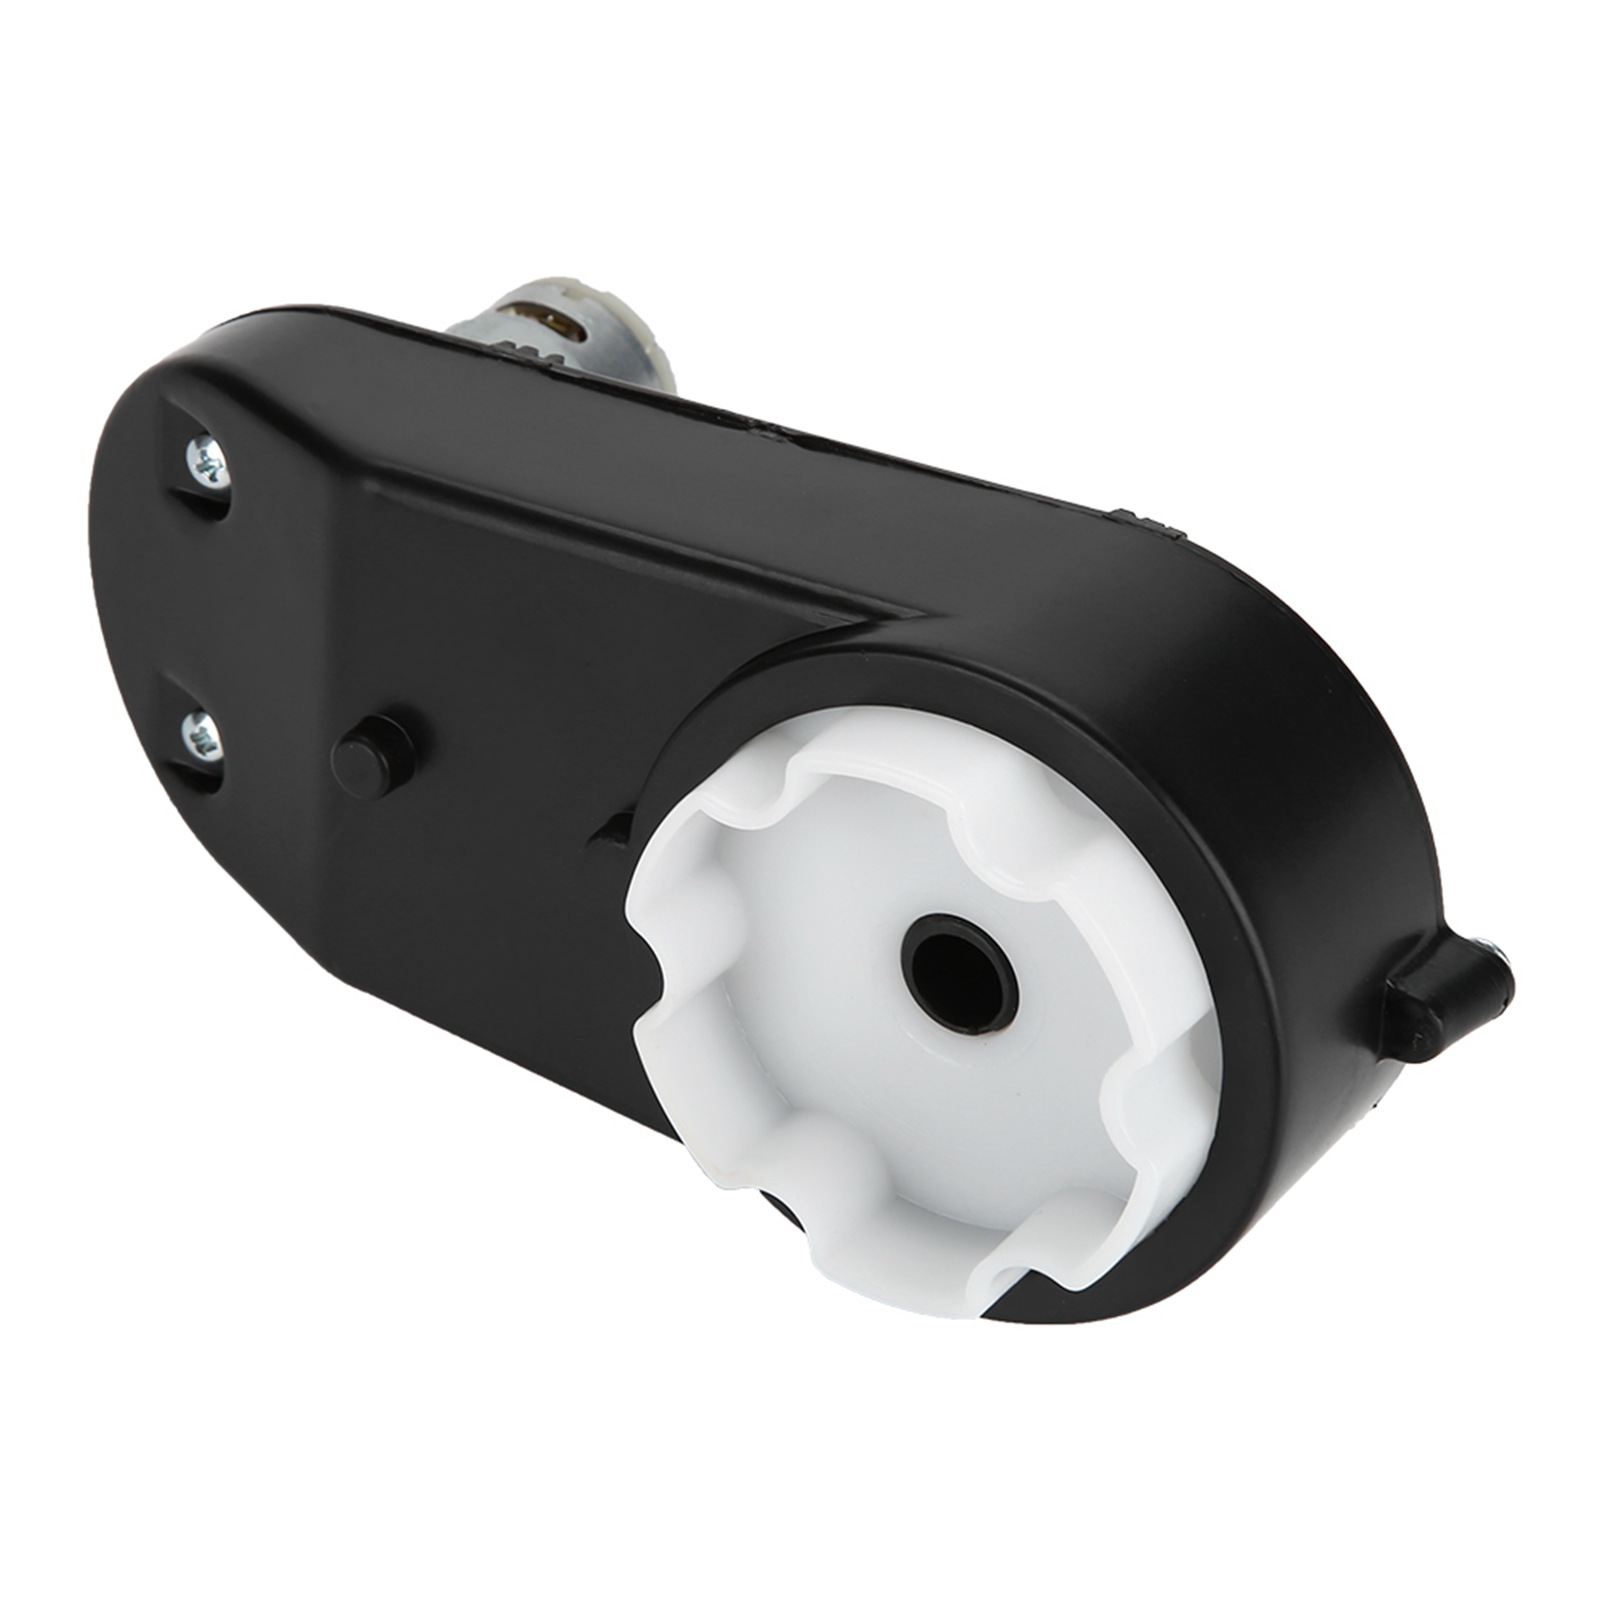 12V Electric Motor Gear Box 8000-30000RPM For Kids Ride On Car Bike Toy Parts